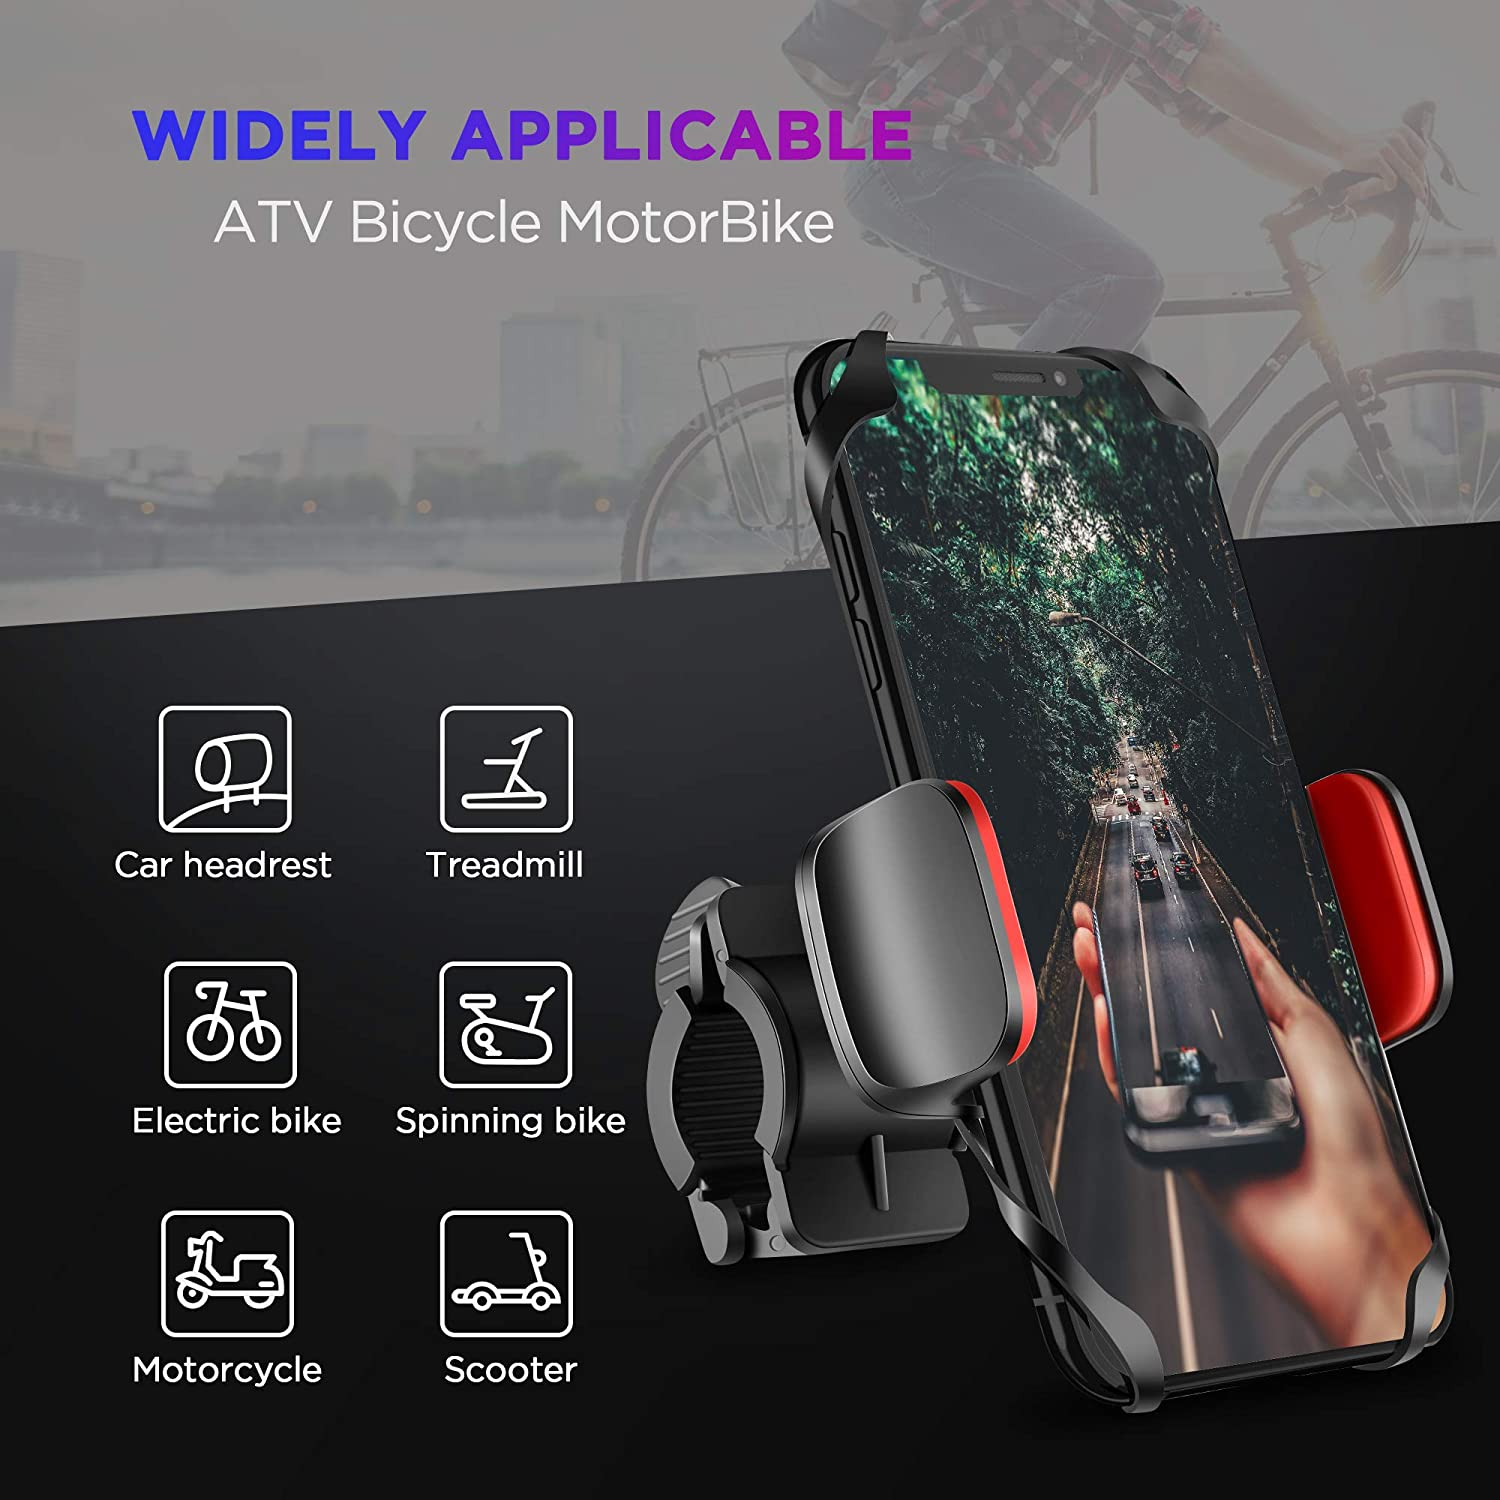 IPOW Upgrade Unbreakable Metal Base Bike Motorcycle Cell Phone Mount /& Handlebar Smartphone Holder with Shock-Absorbing Padding Universal Bicycle Motorbike ATV Compatible with iPhone GPS etc 4350352772 Samsung